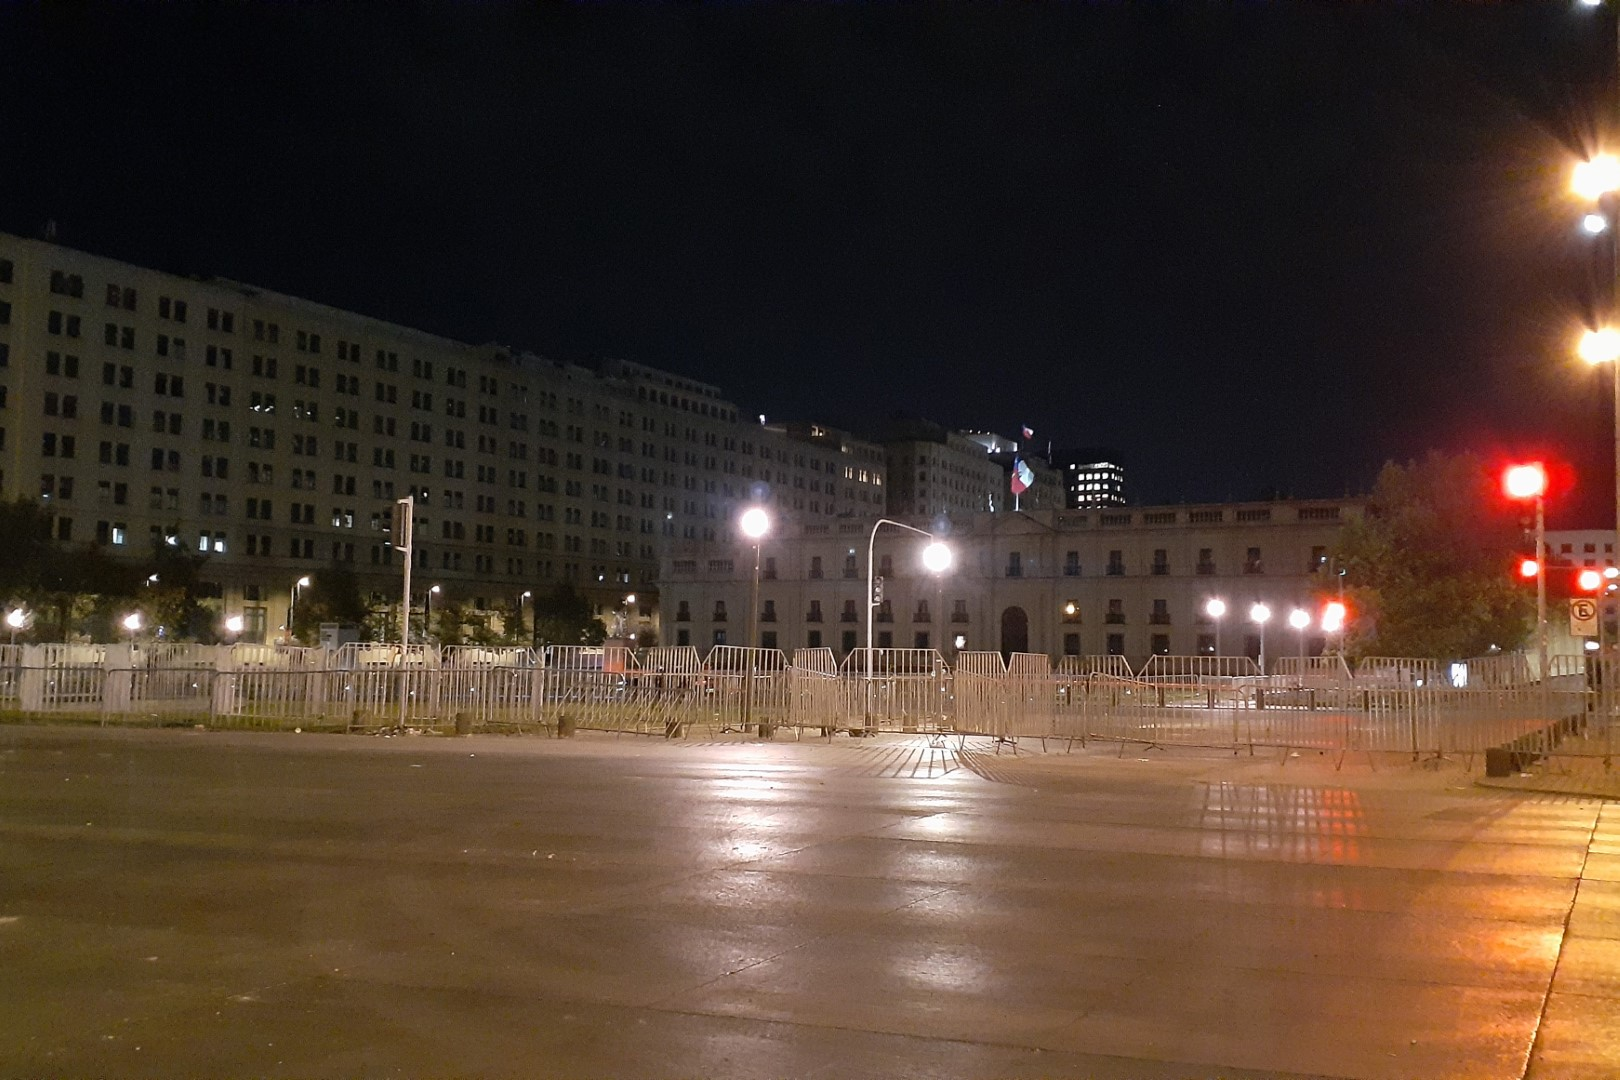 La Moneda, is the seat of the President of the Republic of Chile